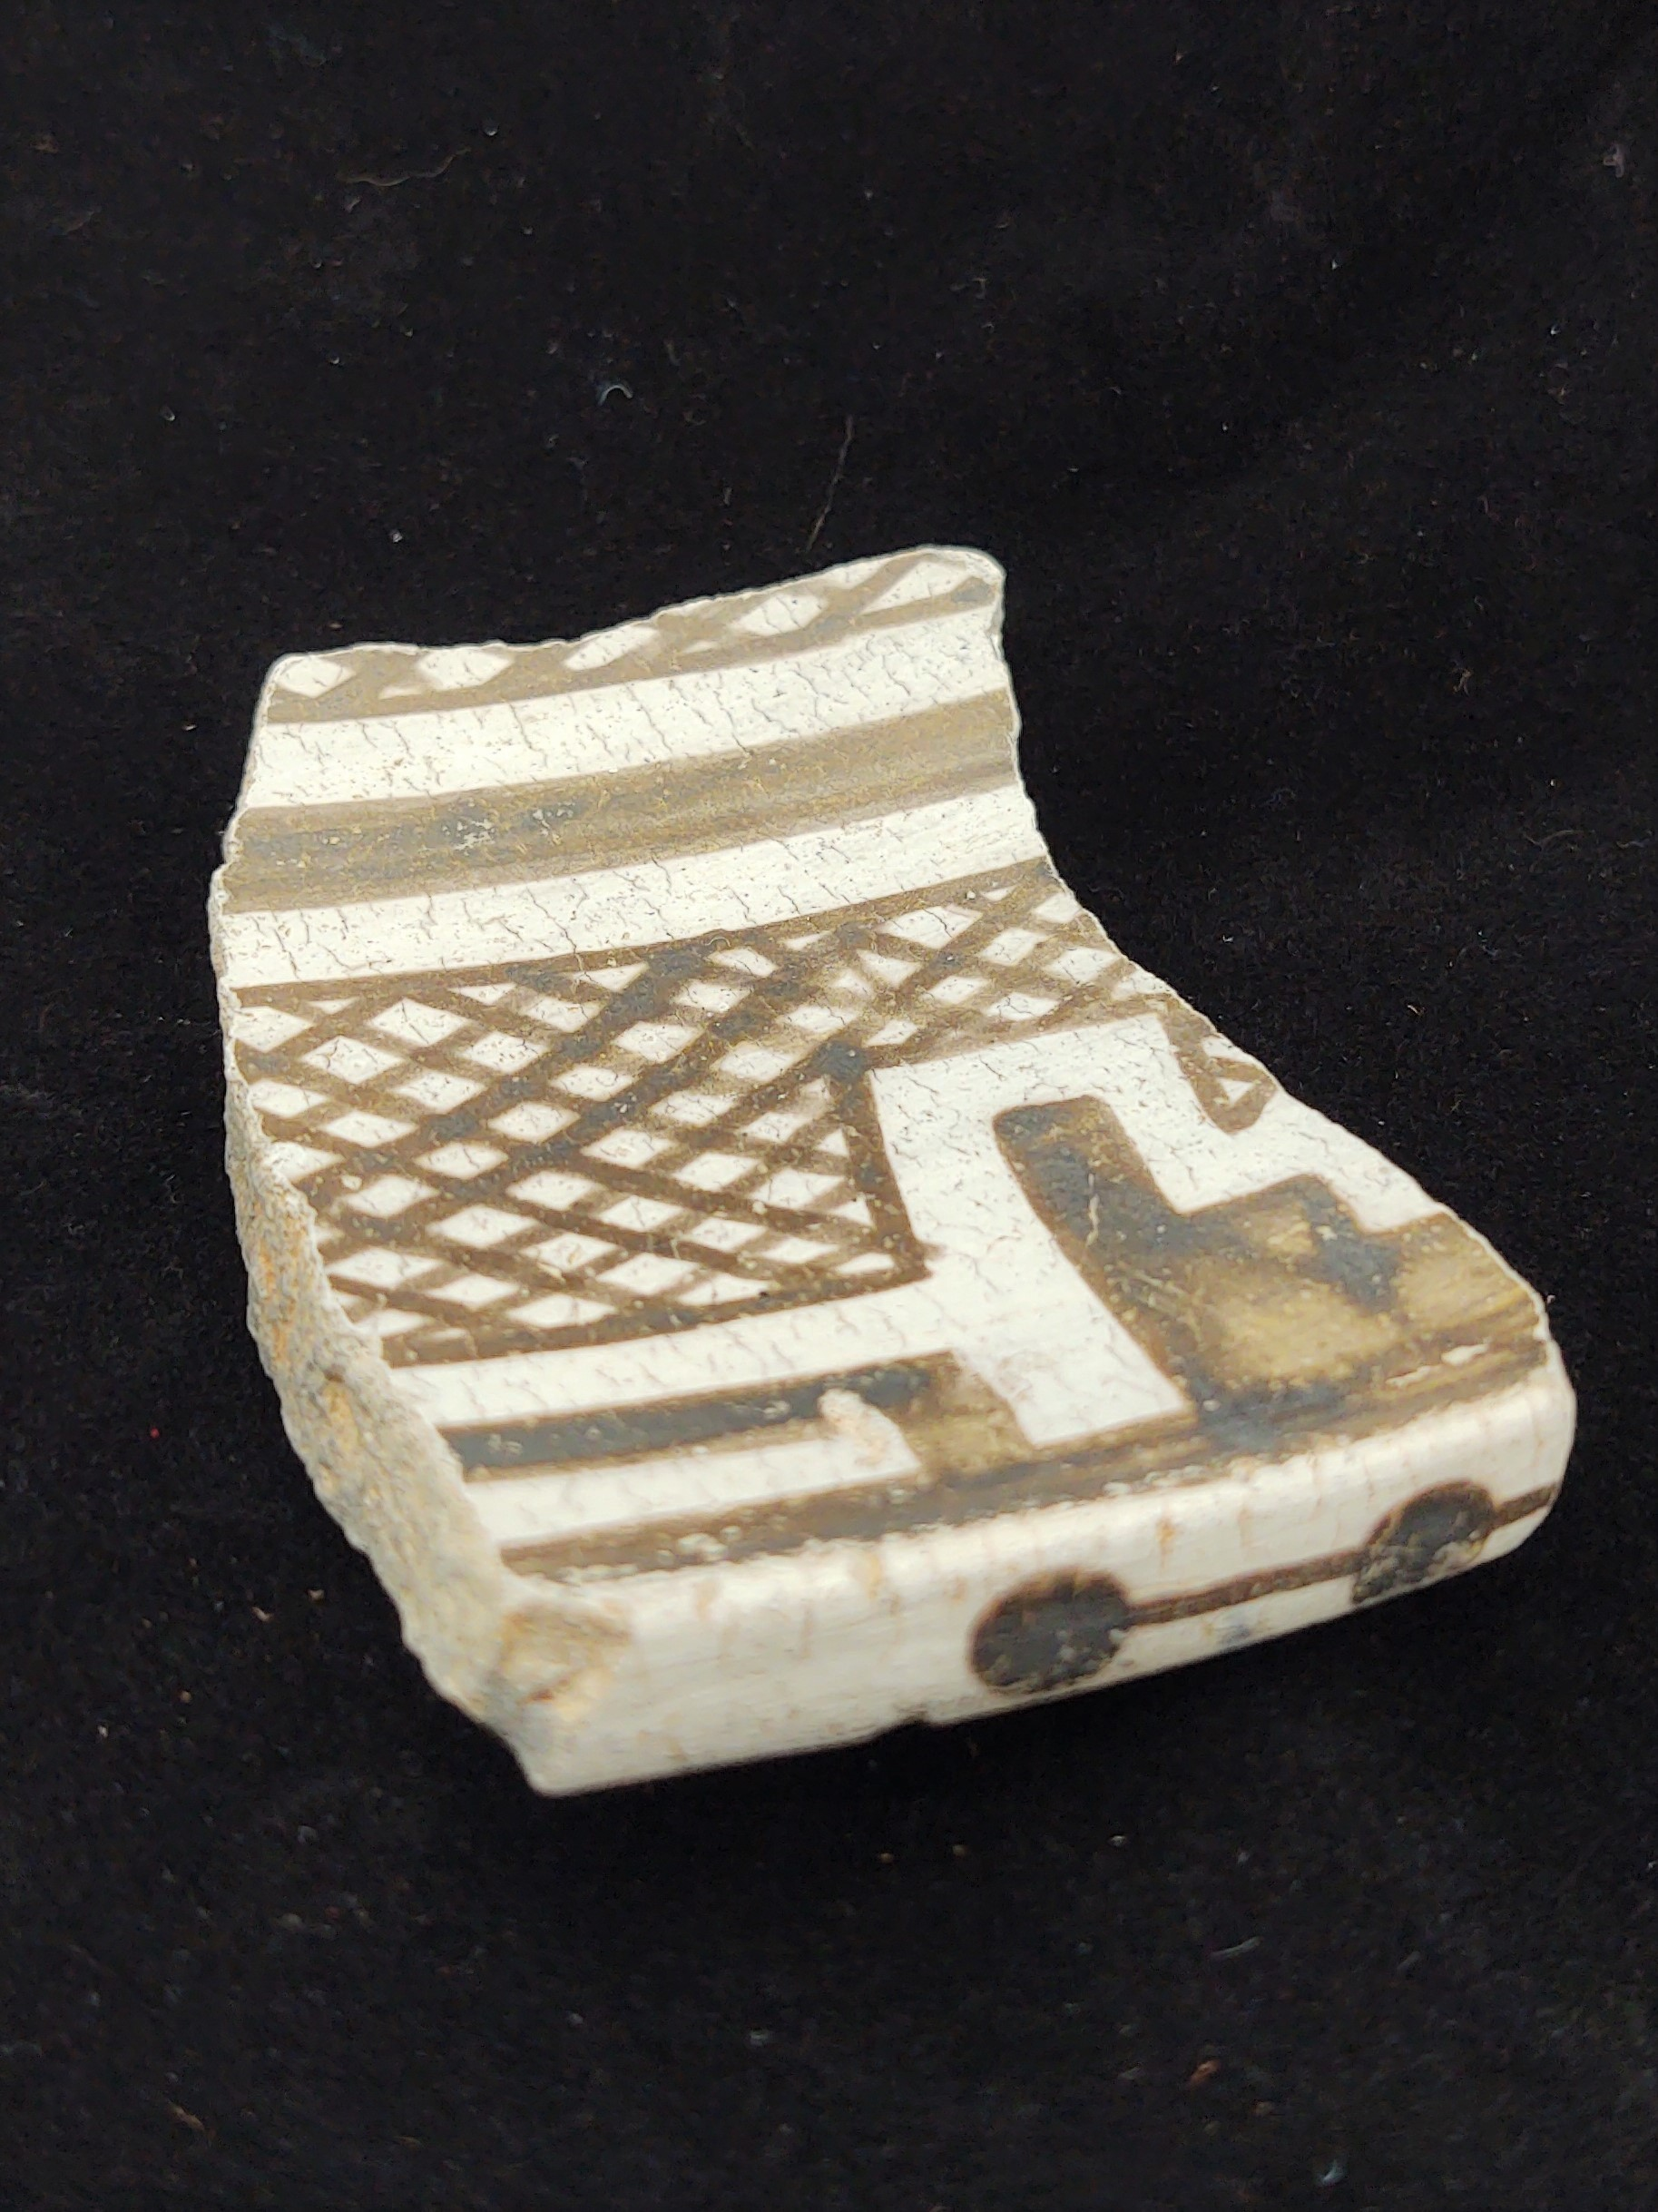 A black and white pottery sherd